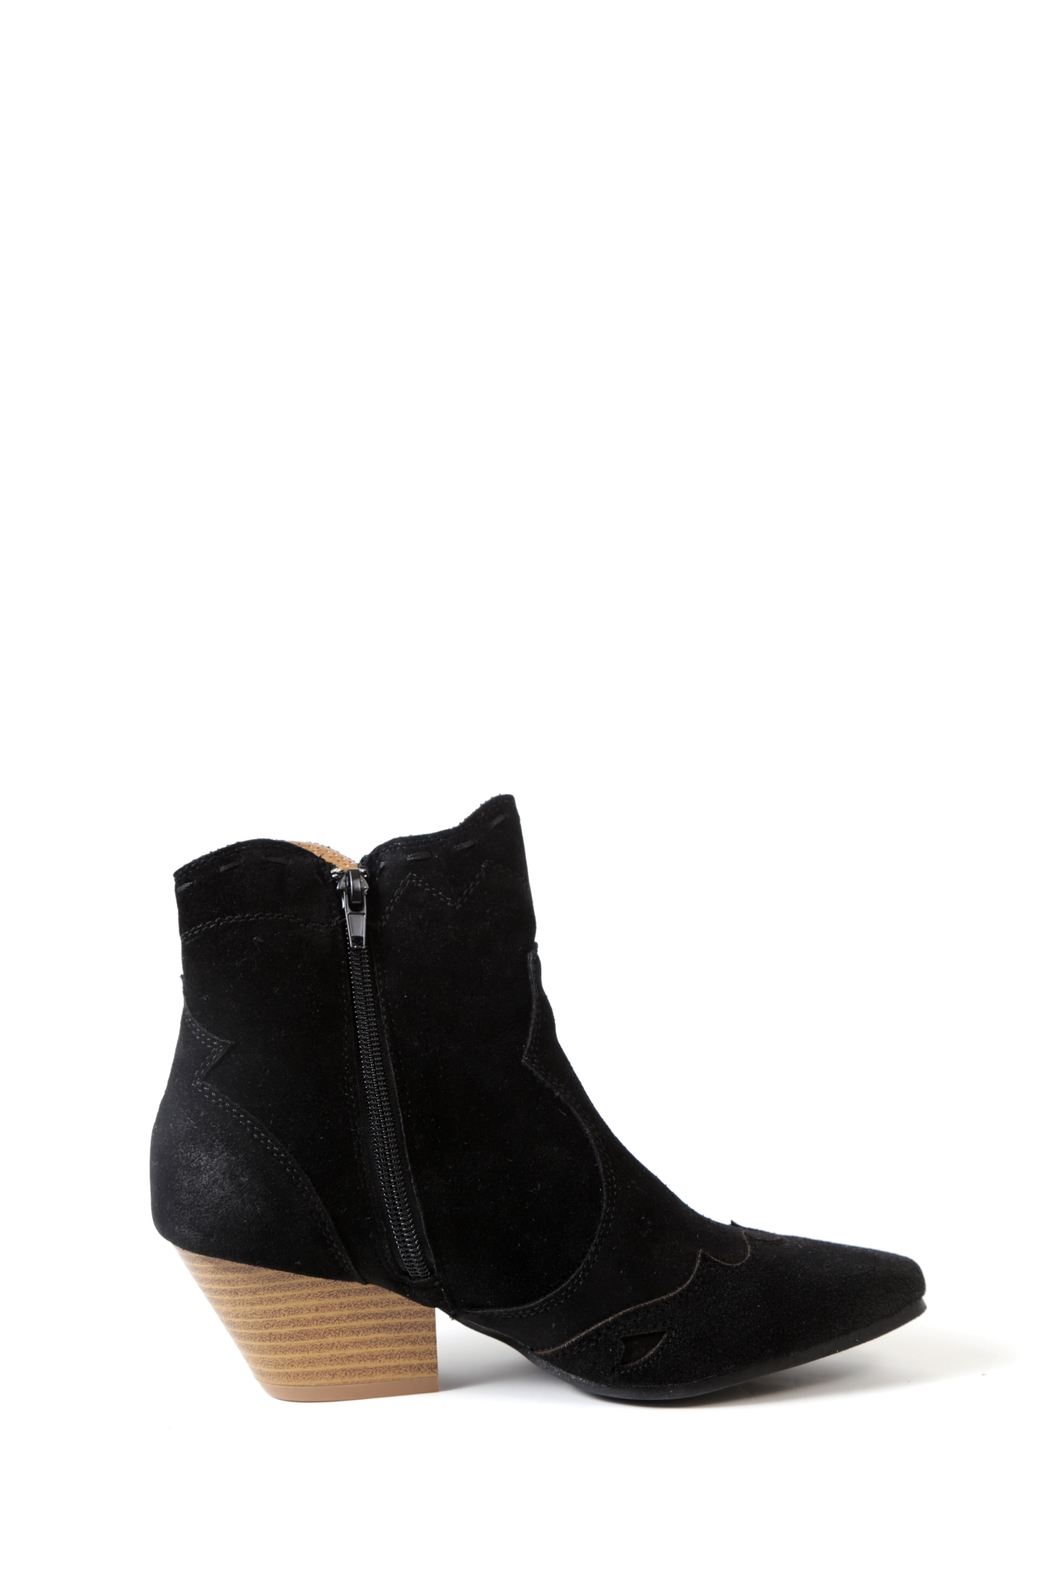 Qupid Rhythm Stitched Boot - Side Cropped Image